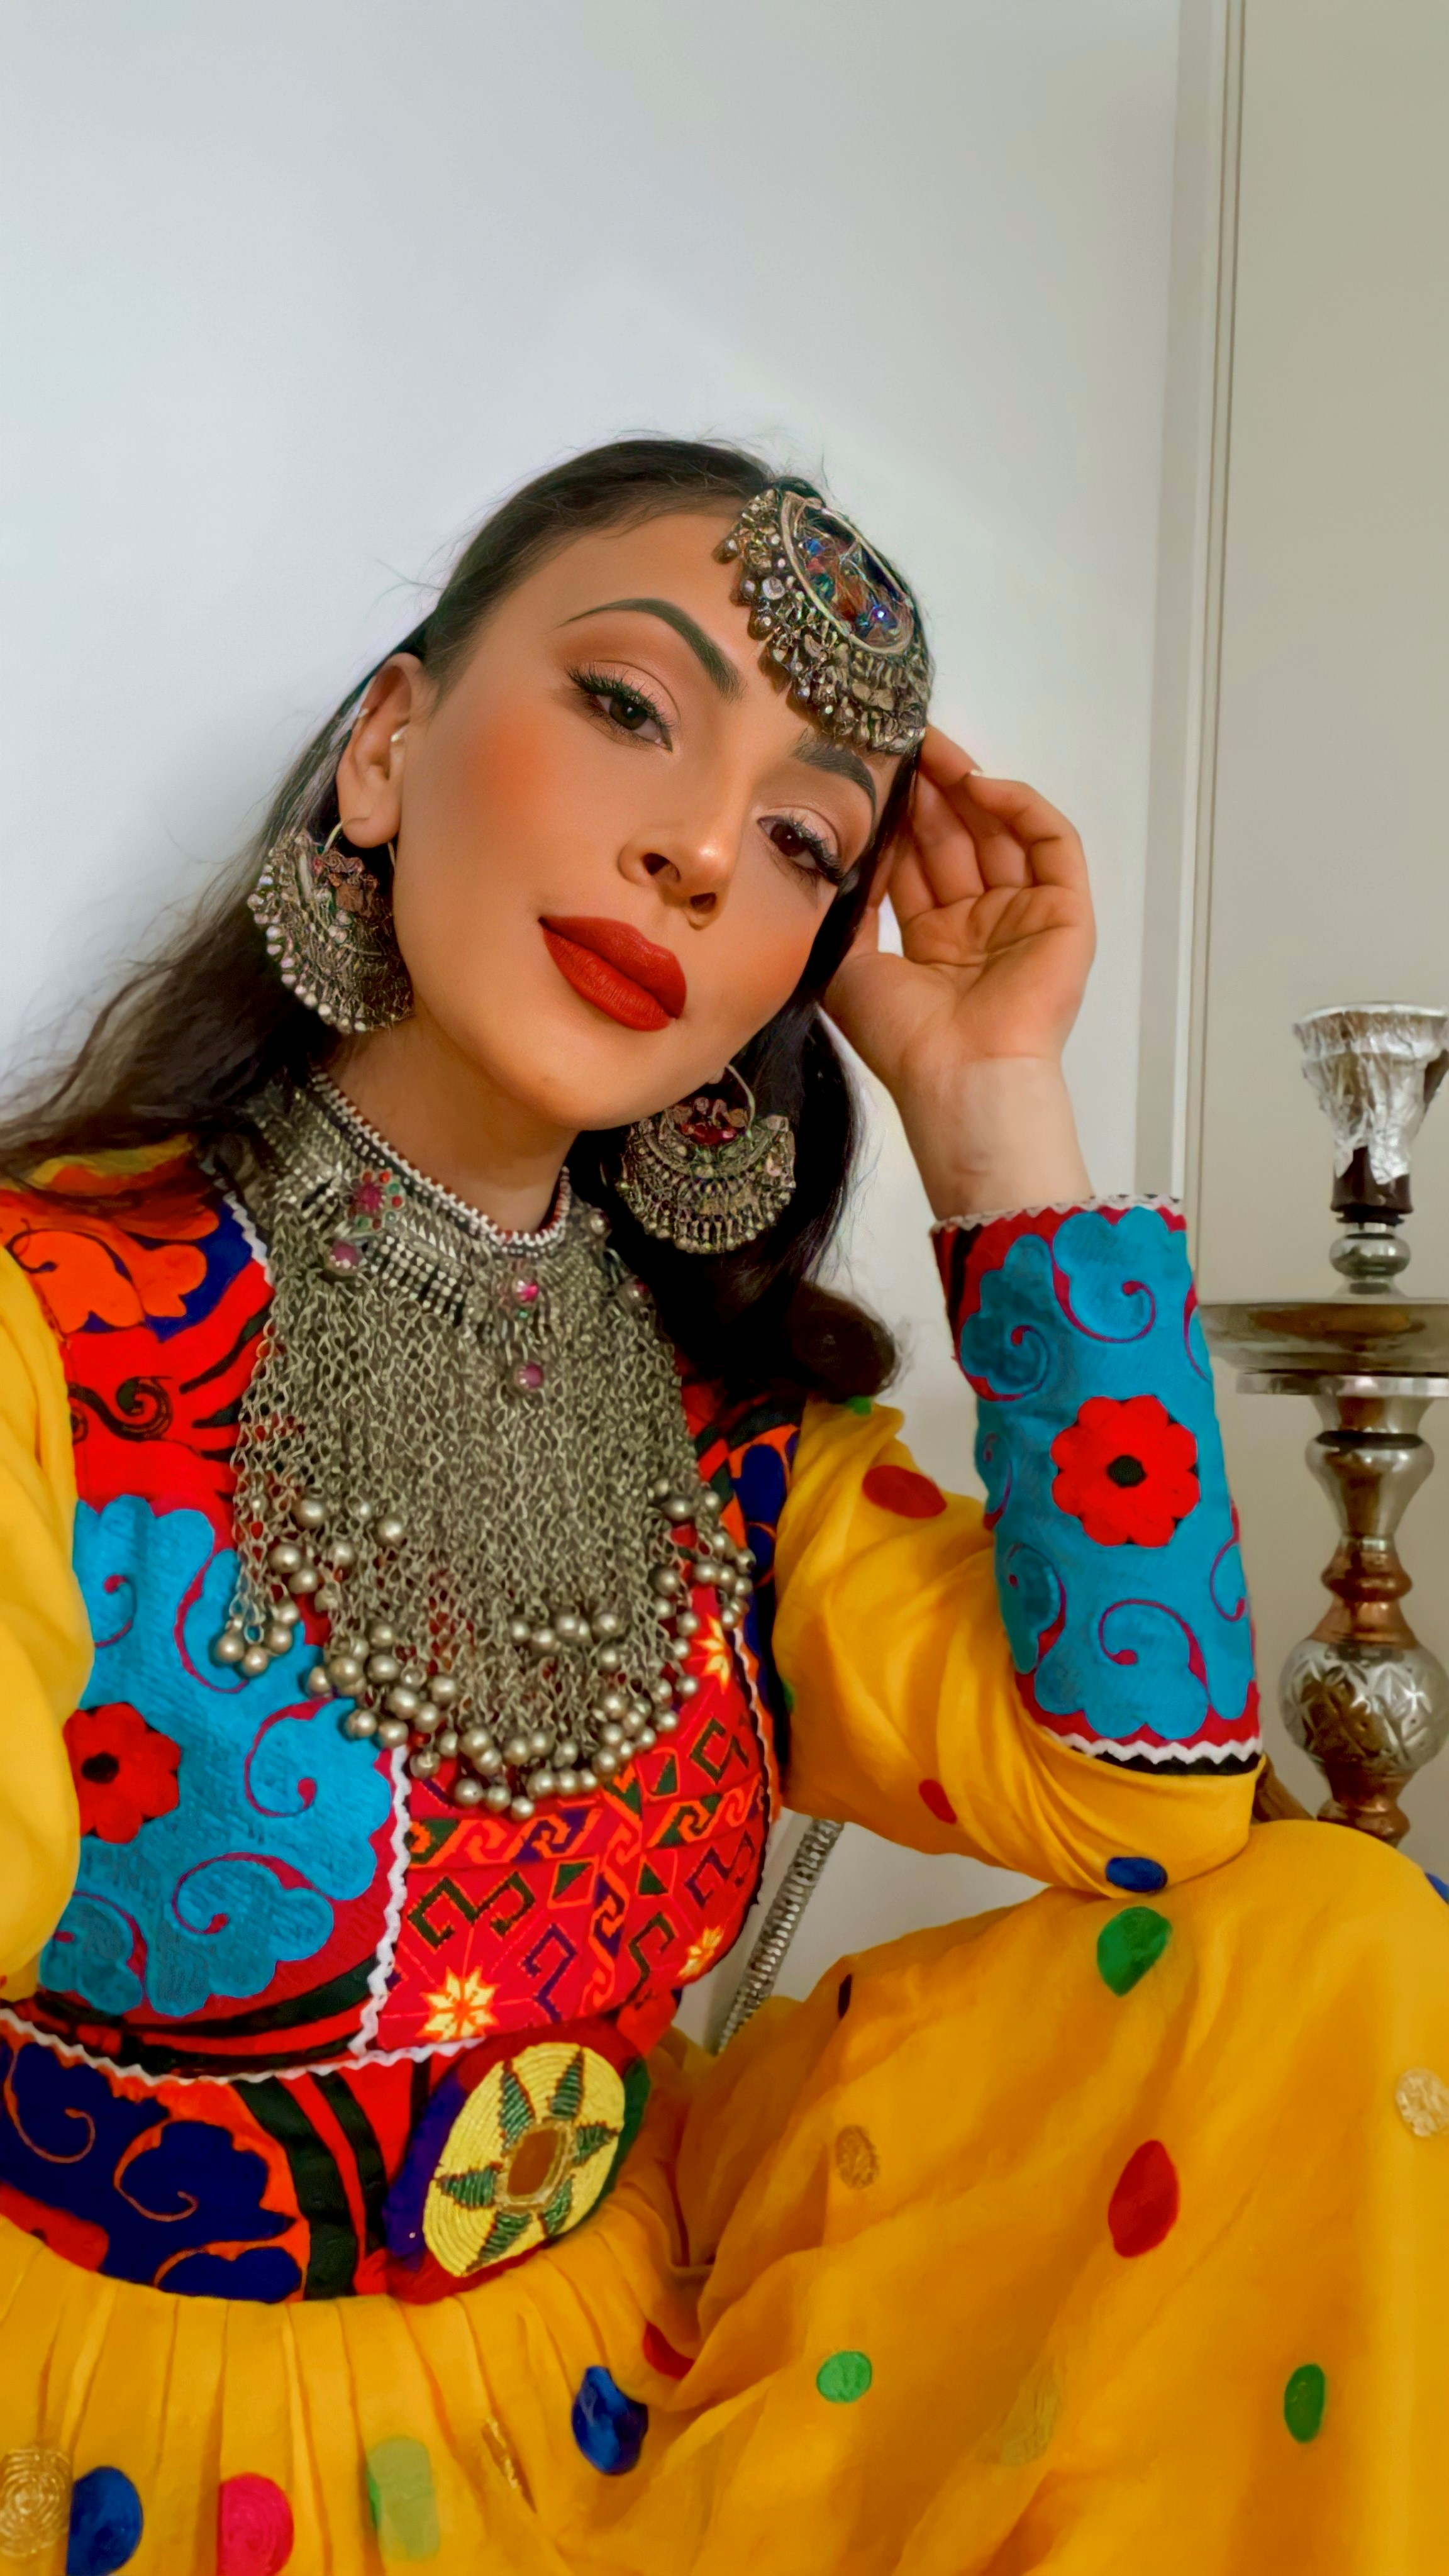 A woman poses in traditional Afghan attire, in Stavanger, Norway, September 12, 2021, in this picture obtained from social media. Sophia Moruwat/via REUTERS